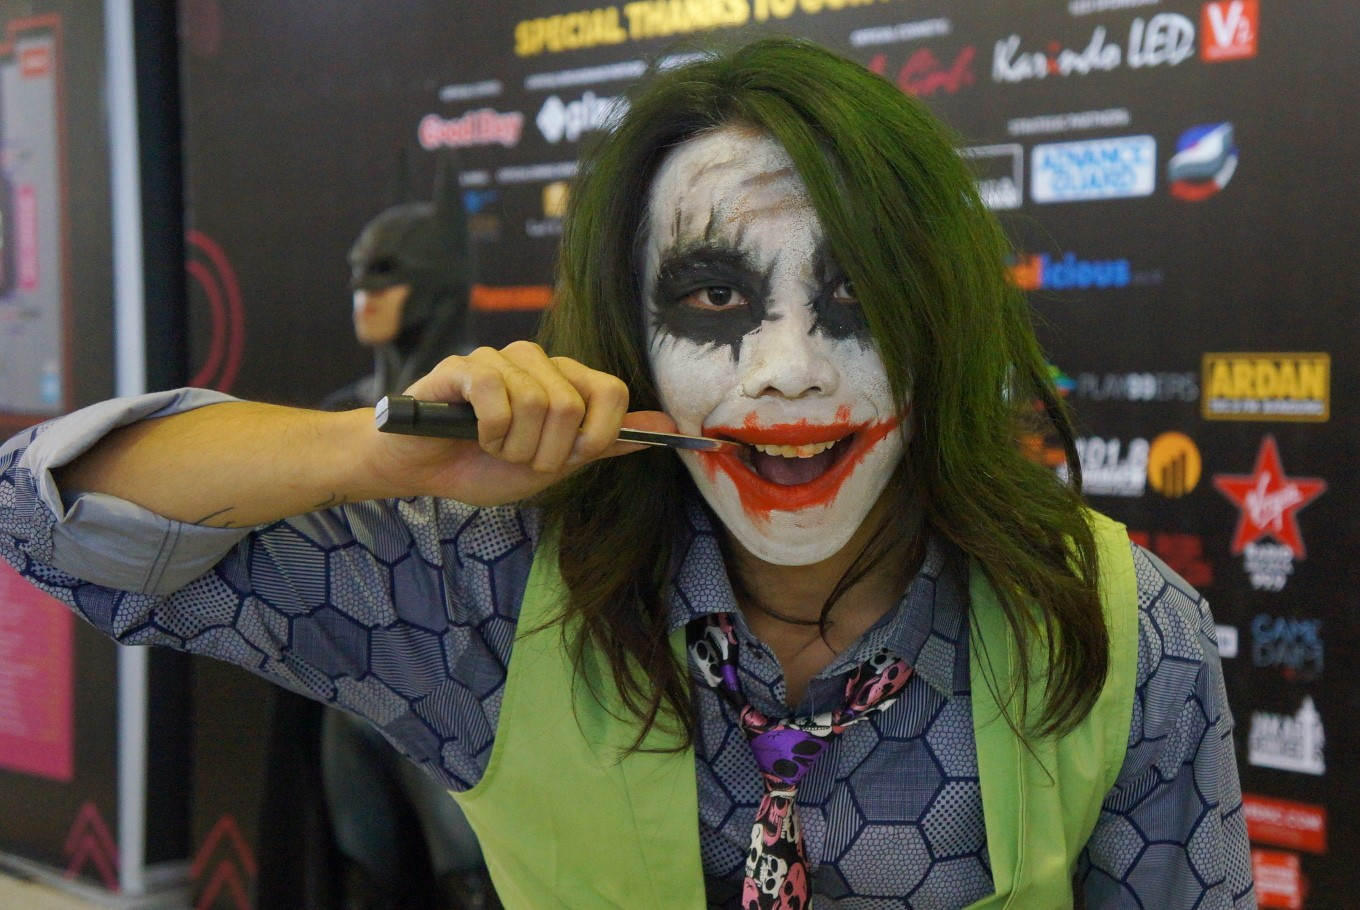 A cosplayer is dressed as Batman's ultimate nemesis, the Joker.